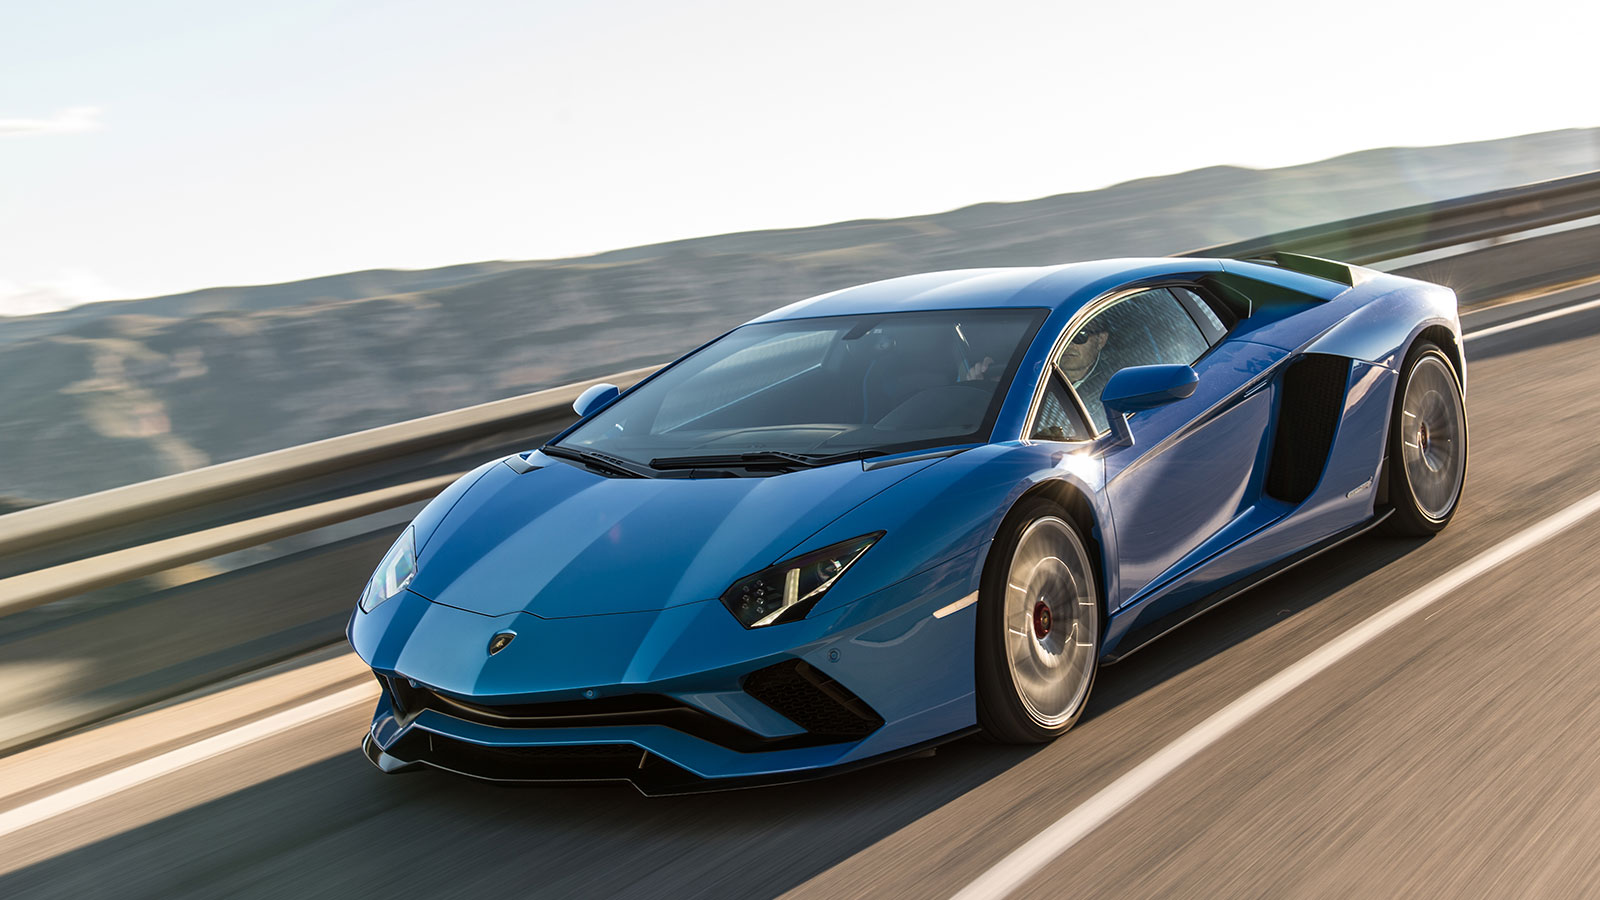 Lamborghini Aventador S Coupe - The Icon Reborn image 26